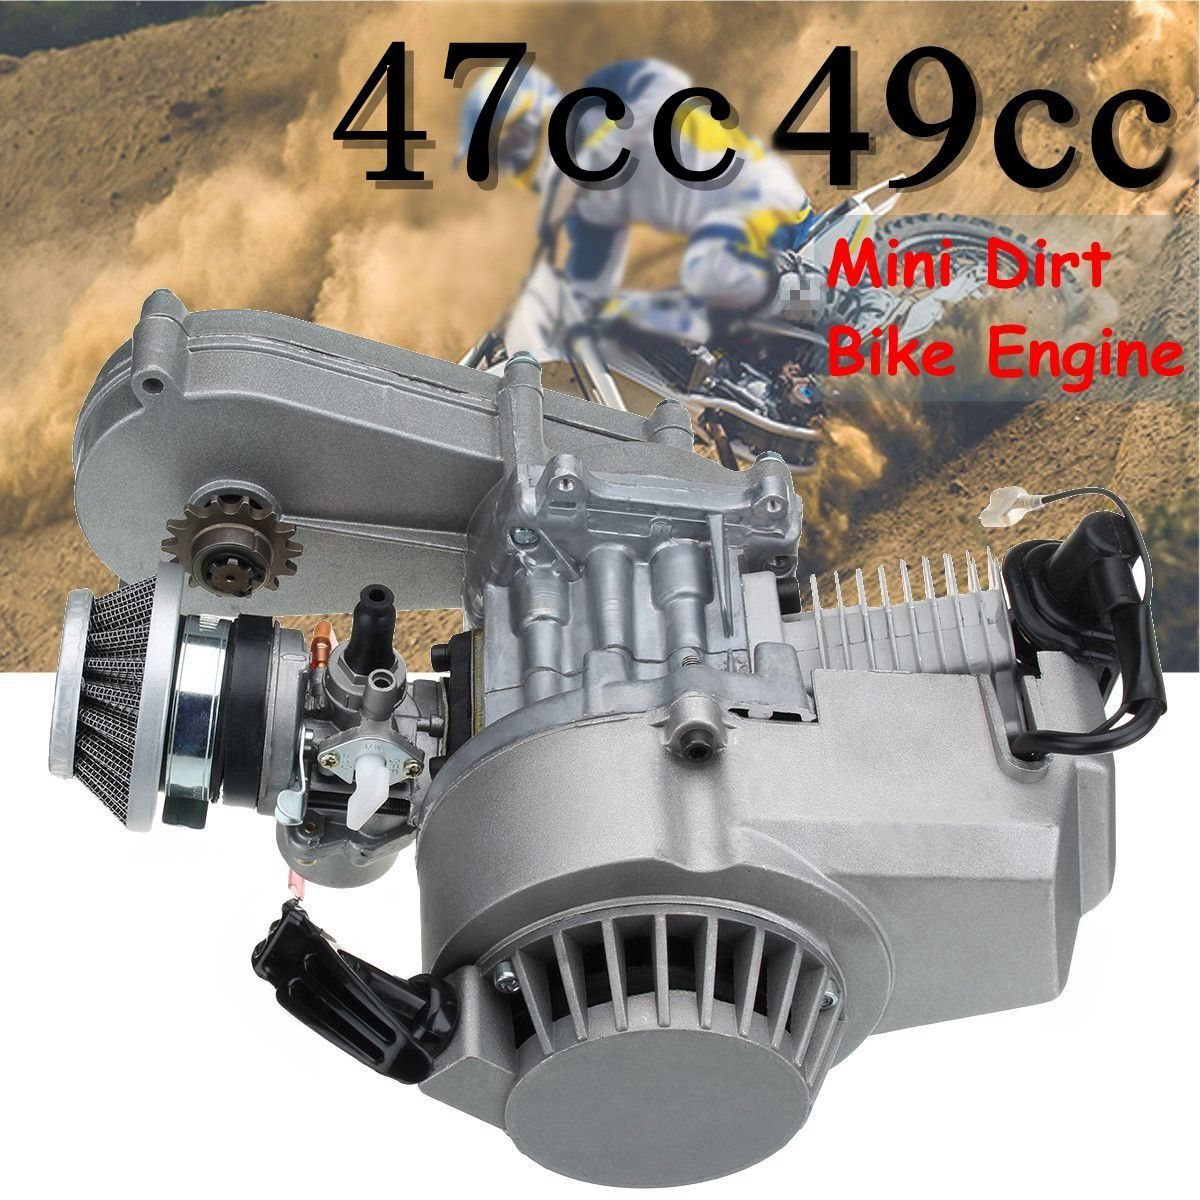 47cc 49cc Engine Electric Pull Start Coil For Mini Dirt Bike Quad Mini Moto ATV 44mm cylinder piston spark plug gasket big bore kit for 47cc 49cc 2 stroke mini dirt bike mini atv quad pocket bikes mini moto